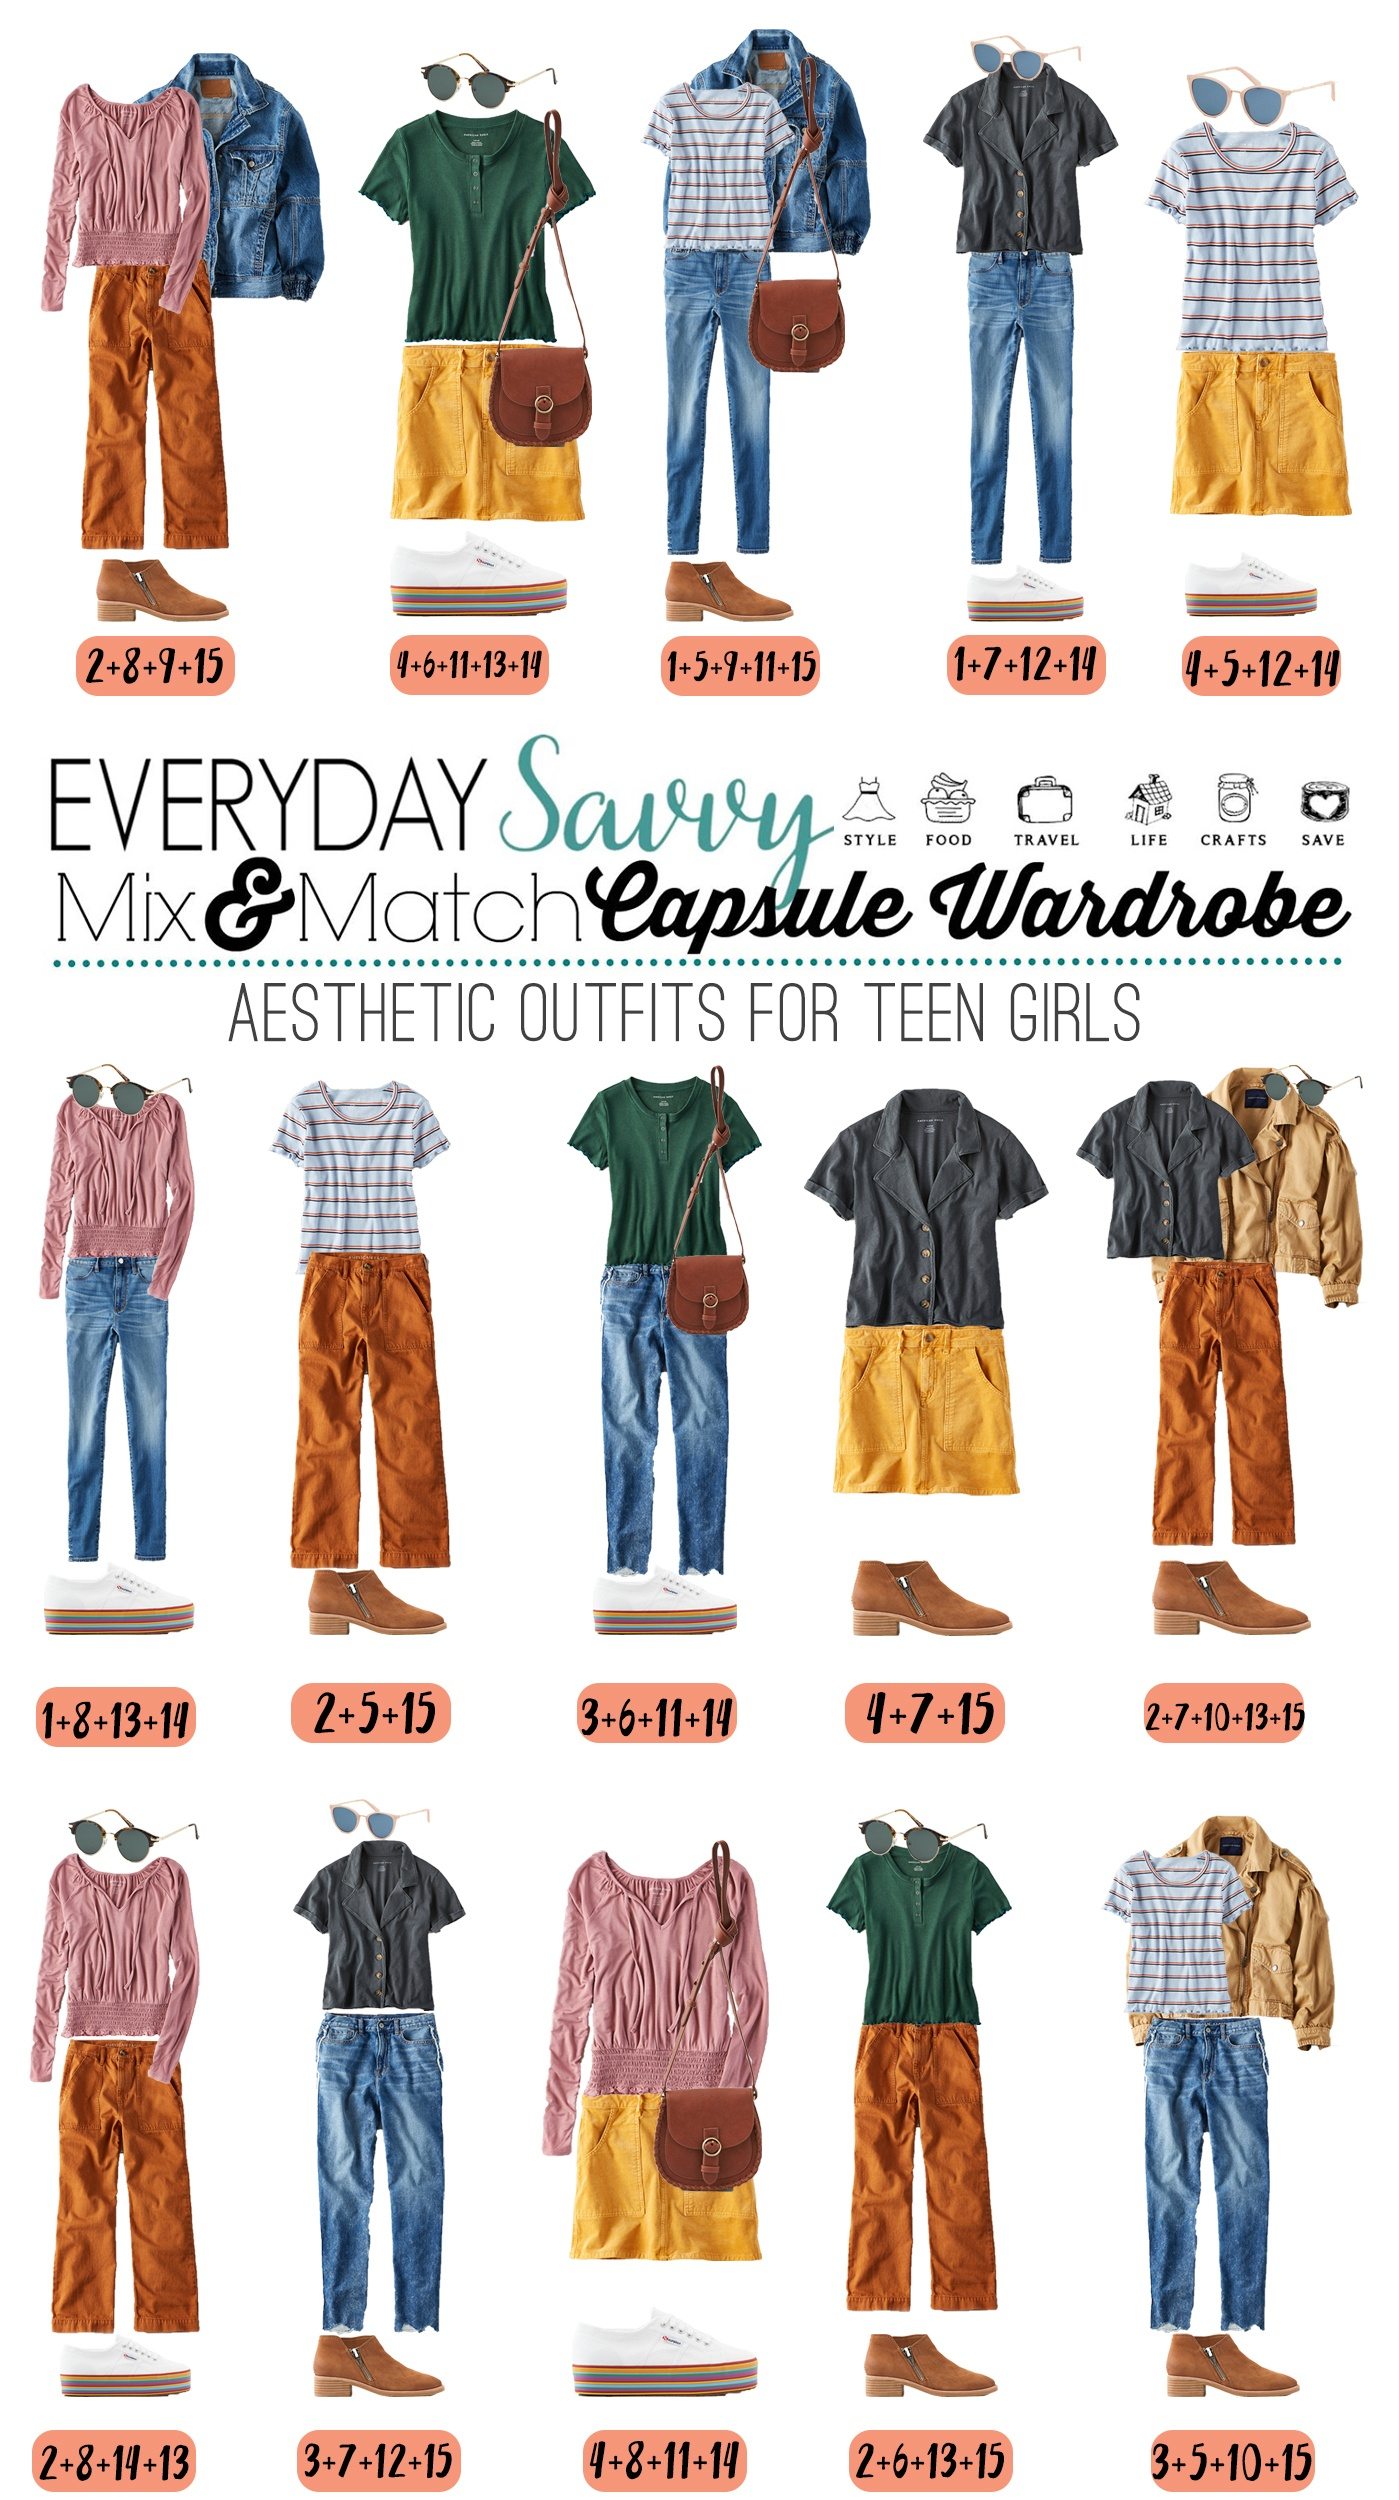 Aesthetic Outfits For Teen Girls Cute Aesthetic Clothes An aesthetic object or a work algorithmic aesthetics are developed based on the aesthetic measure theory, surveys of human. aesthetic outfits for teen girls cute